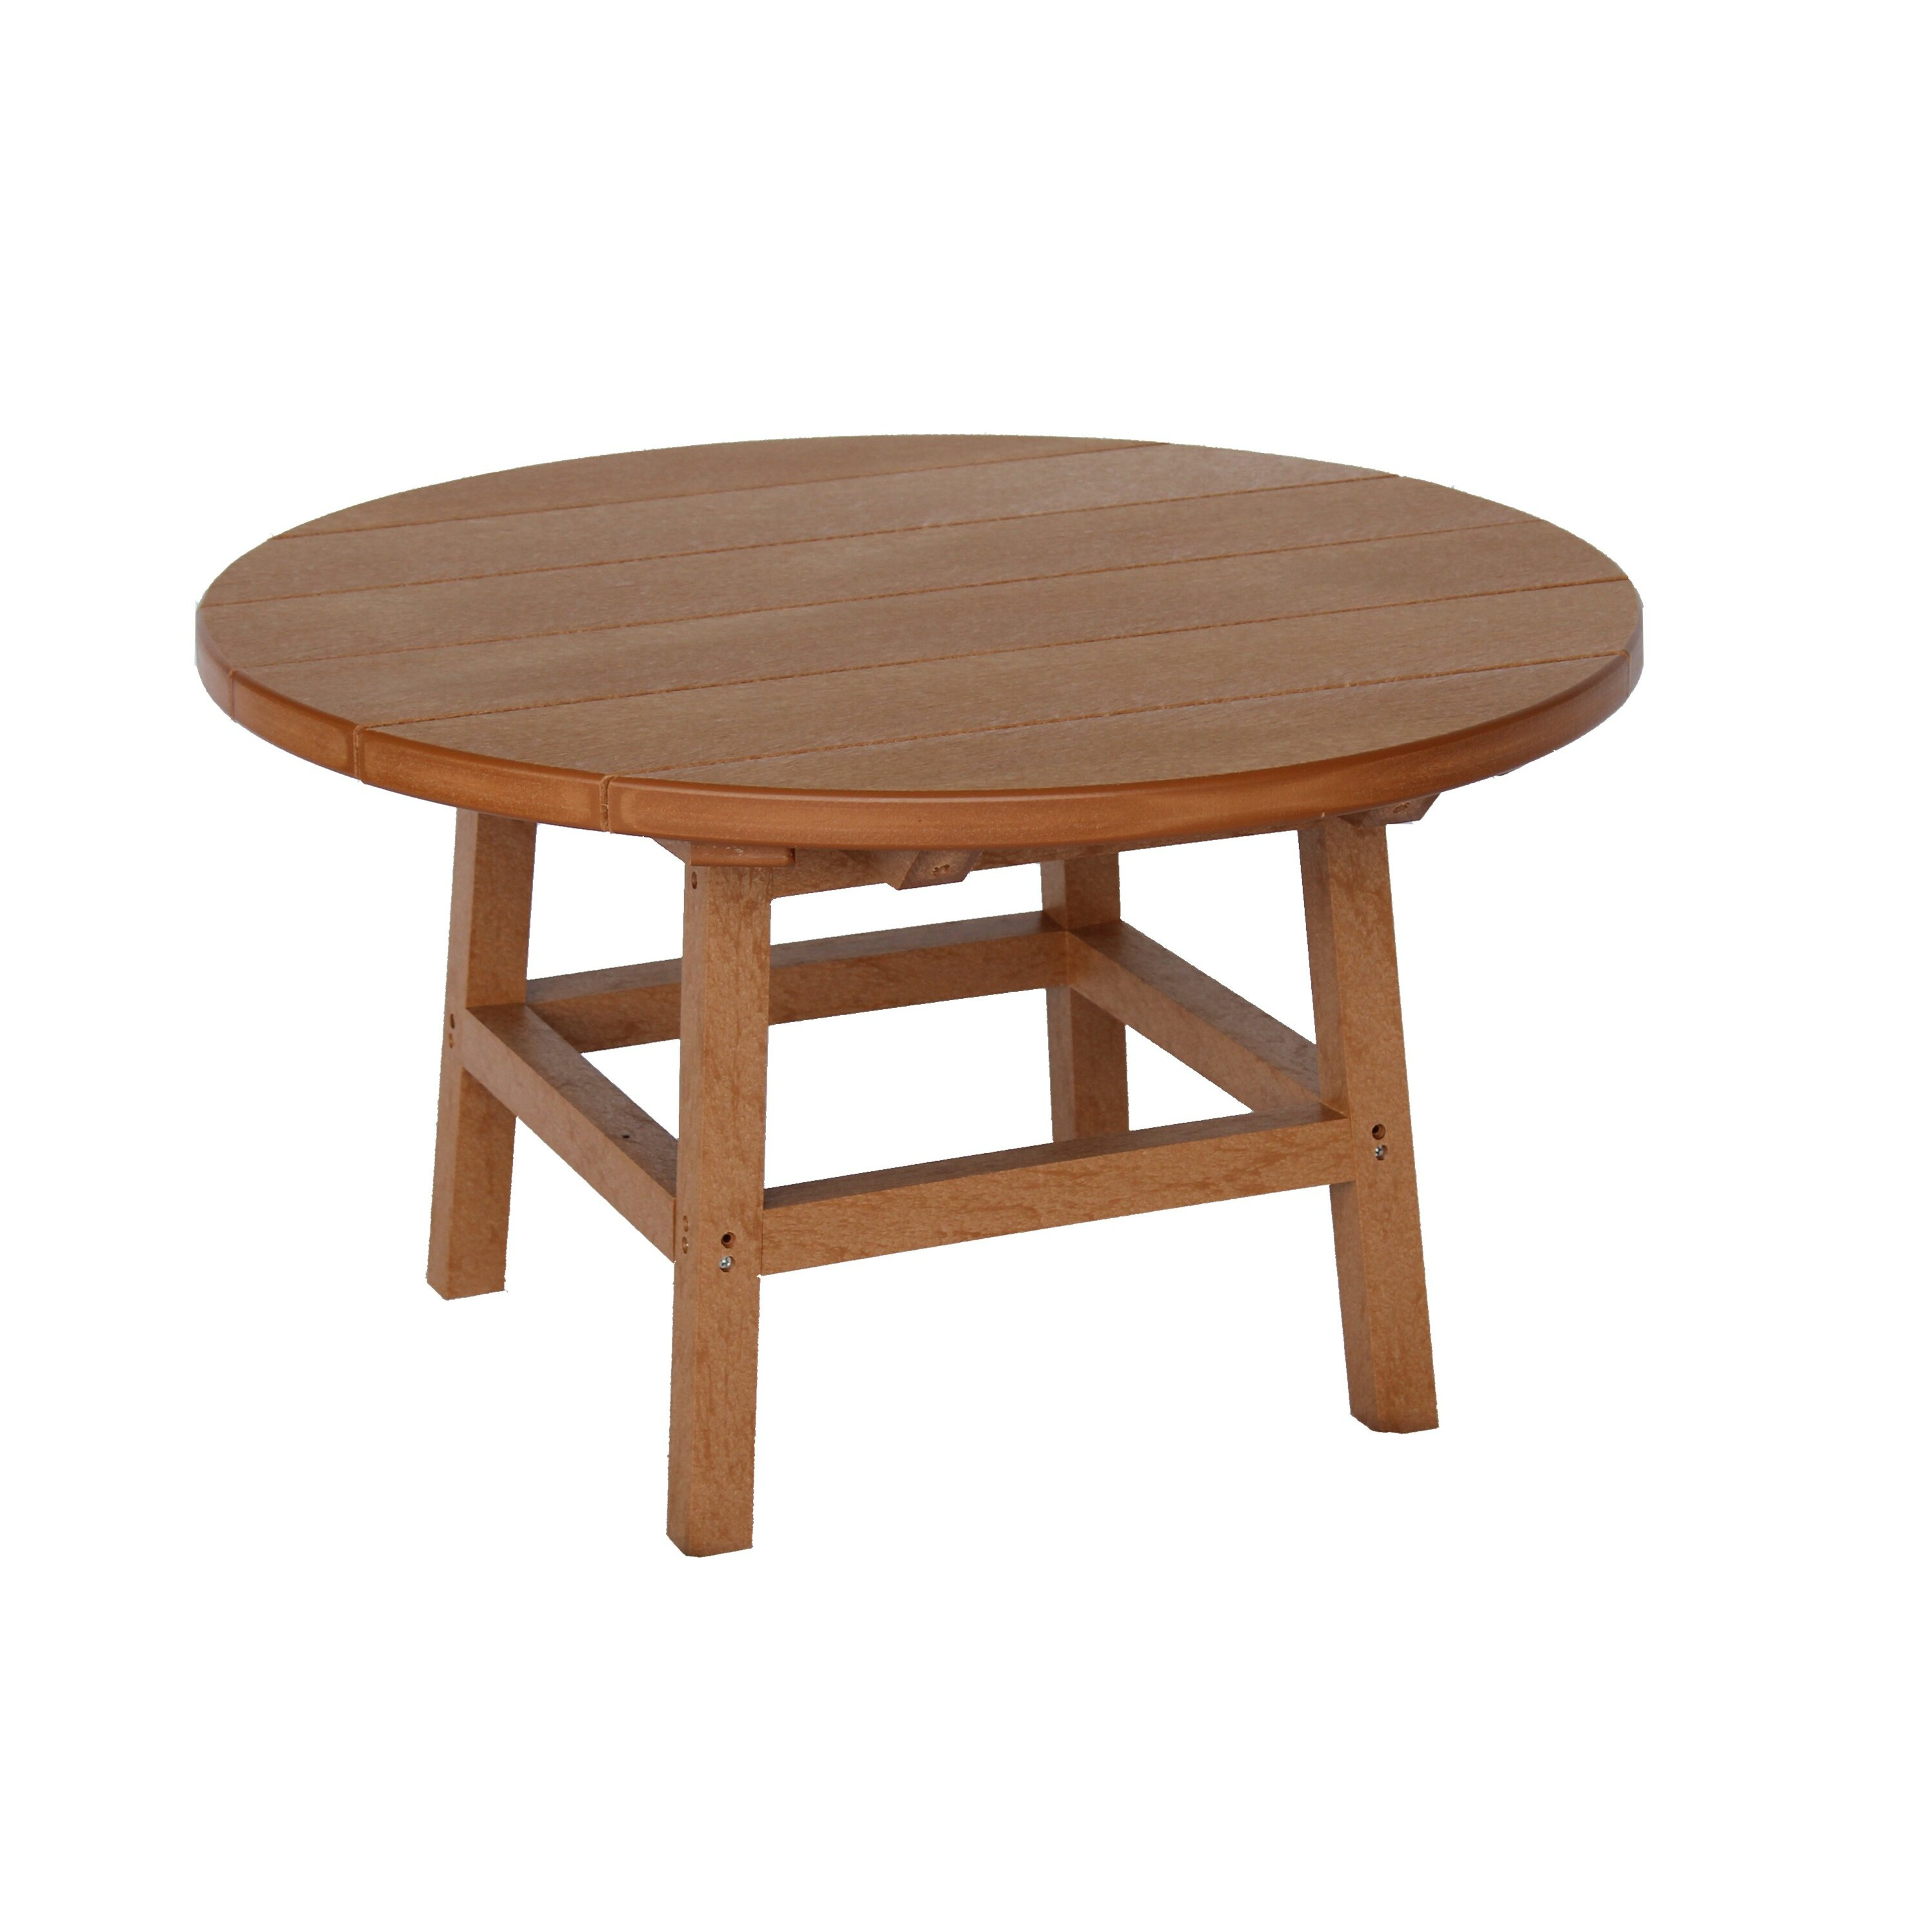 CR Plastic Products Generations Coffee Table & Reviews